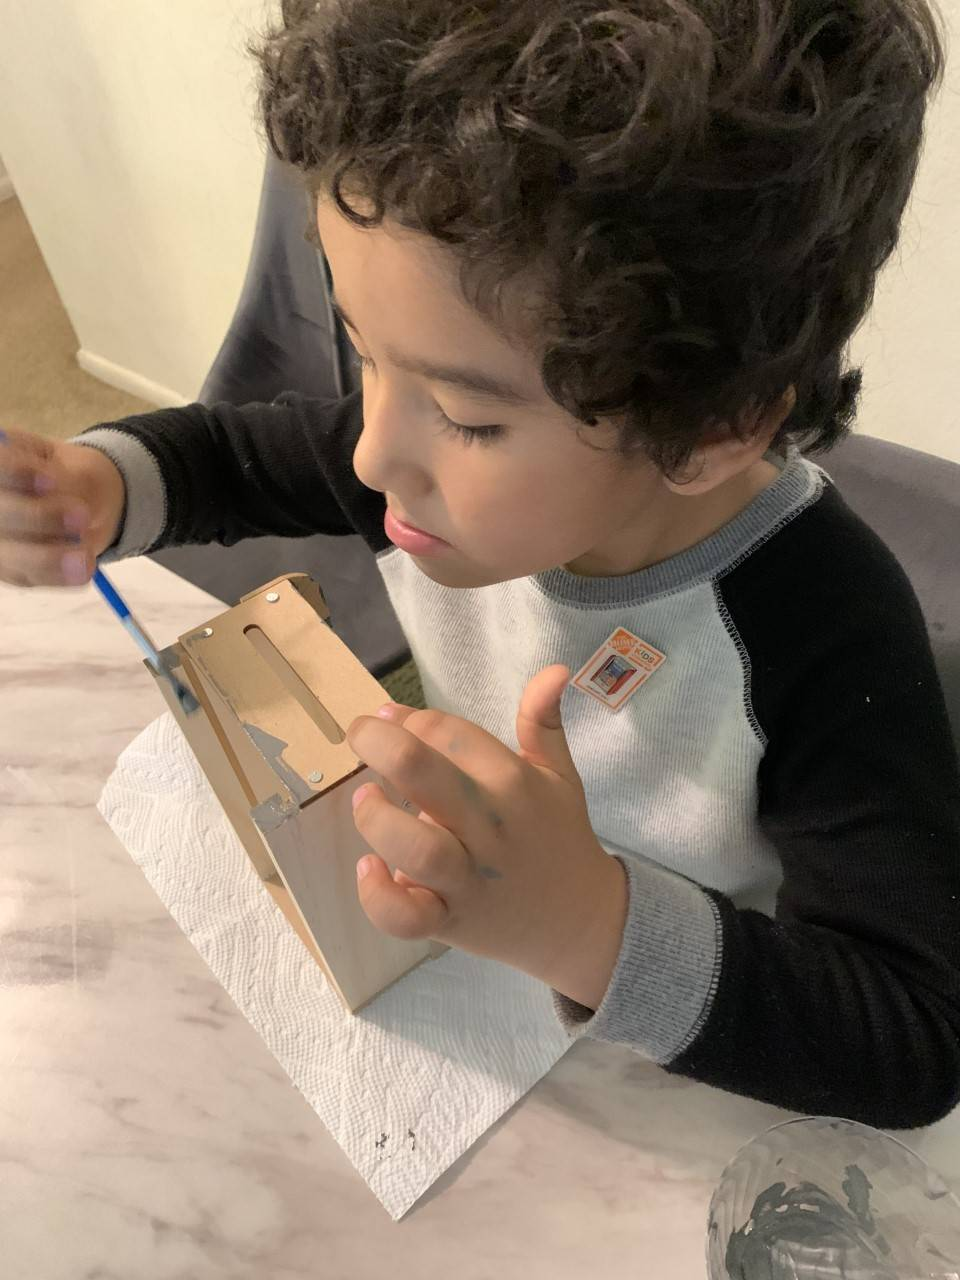 The little boy is painting the rest of his project.